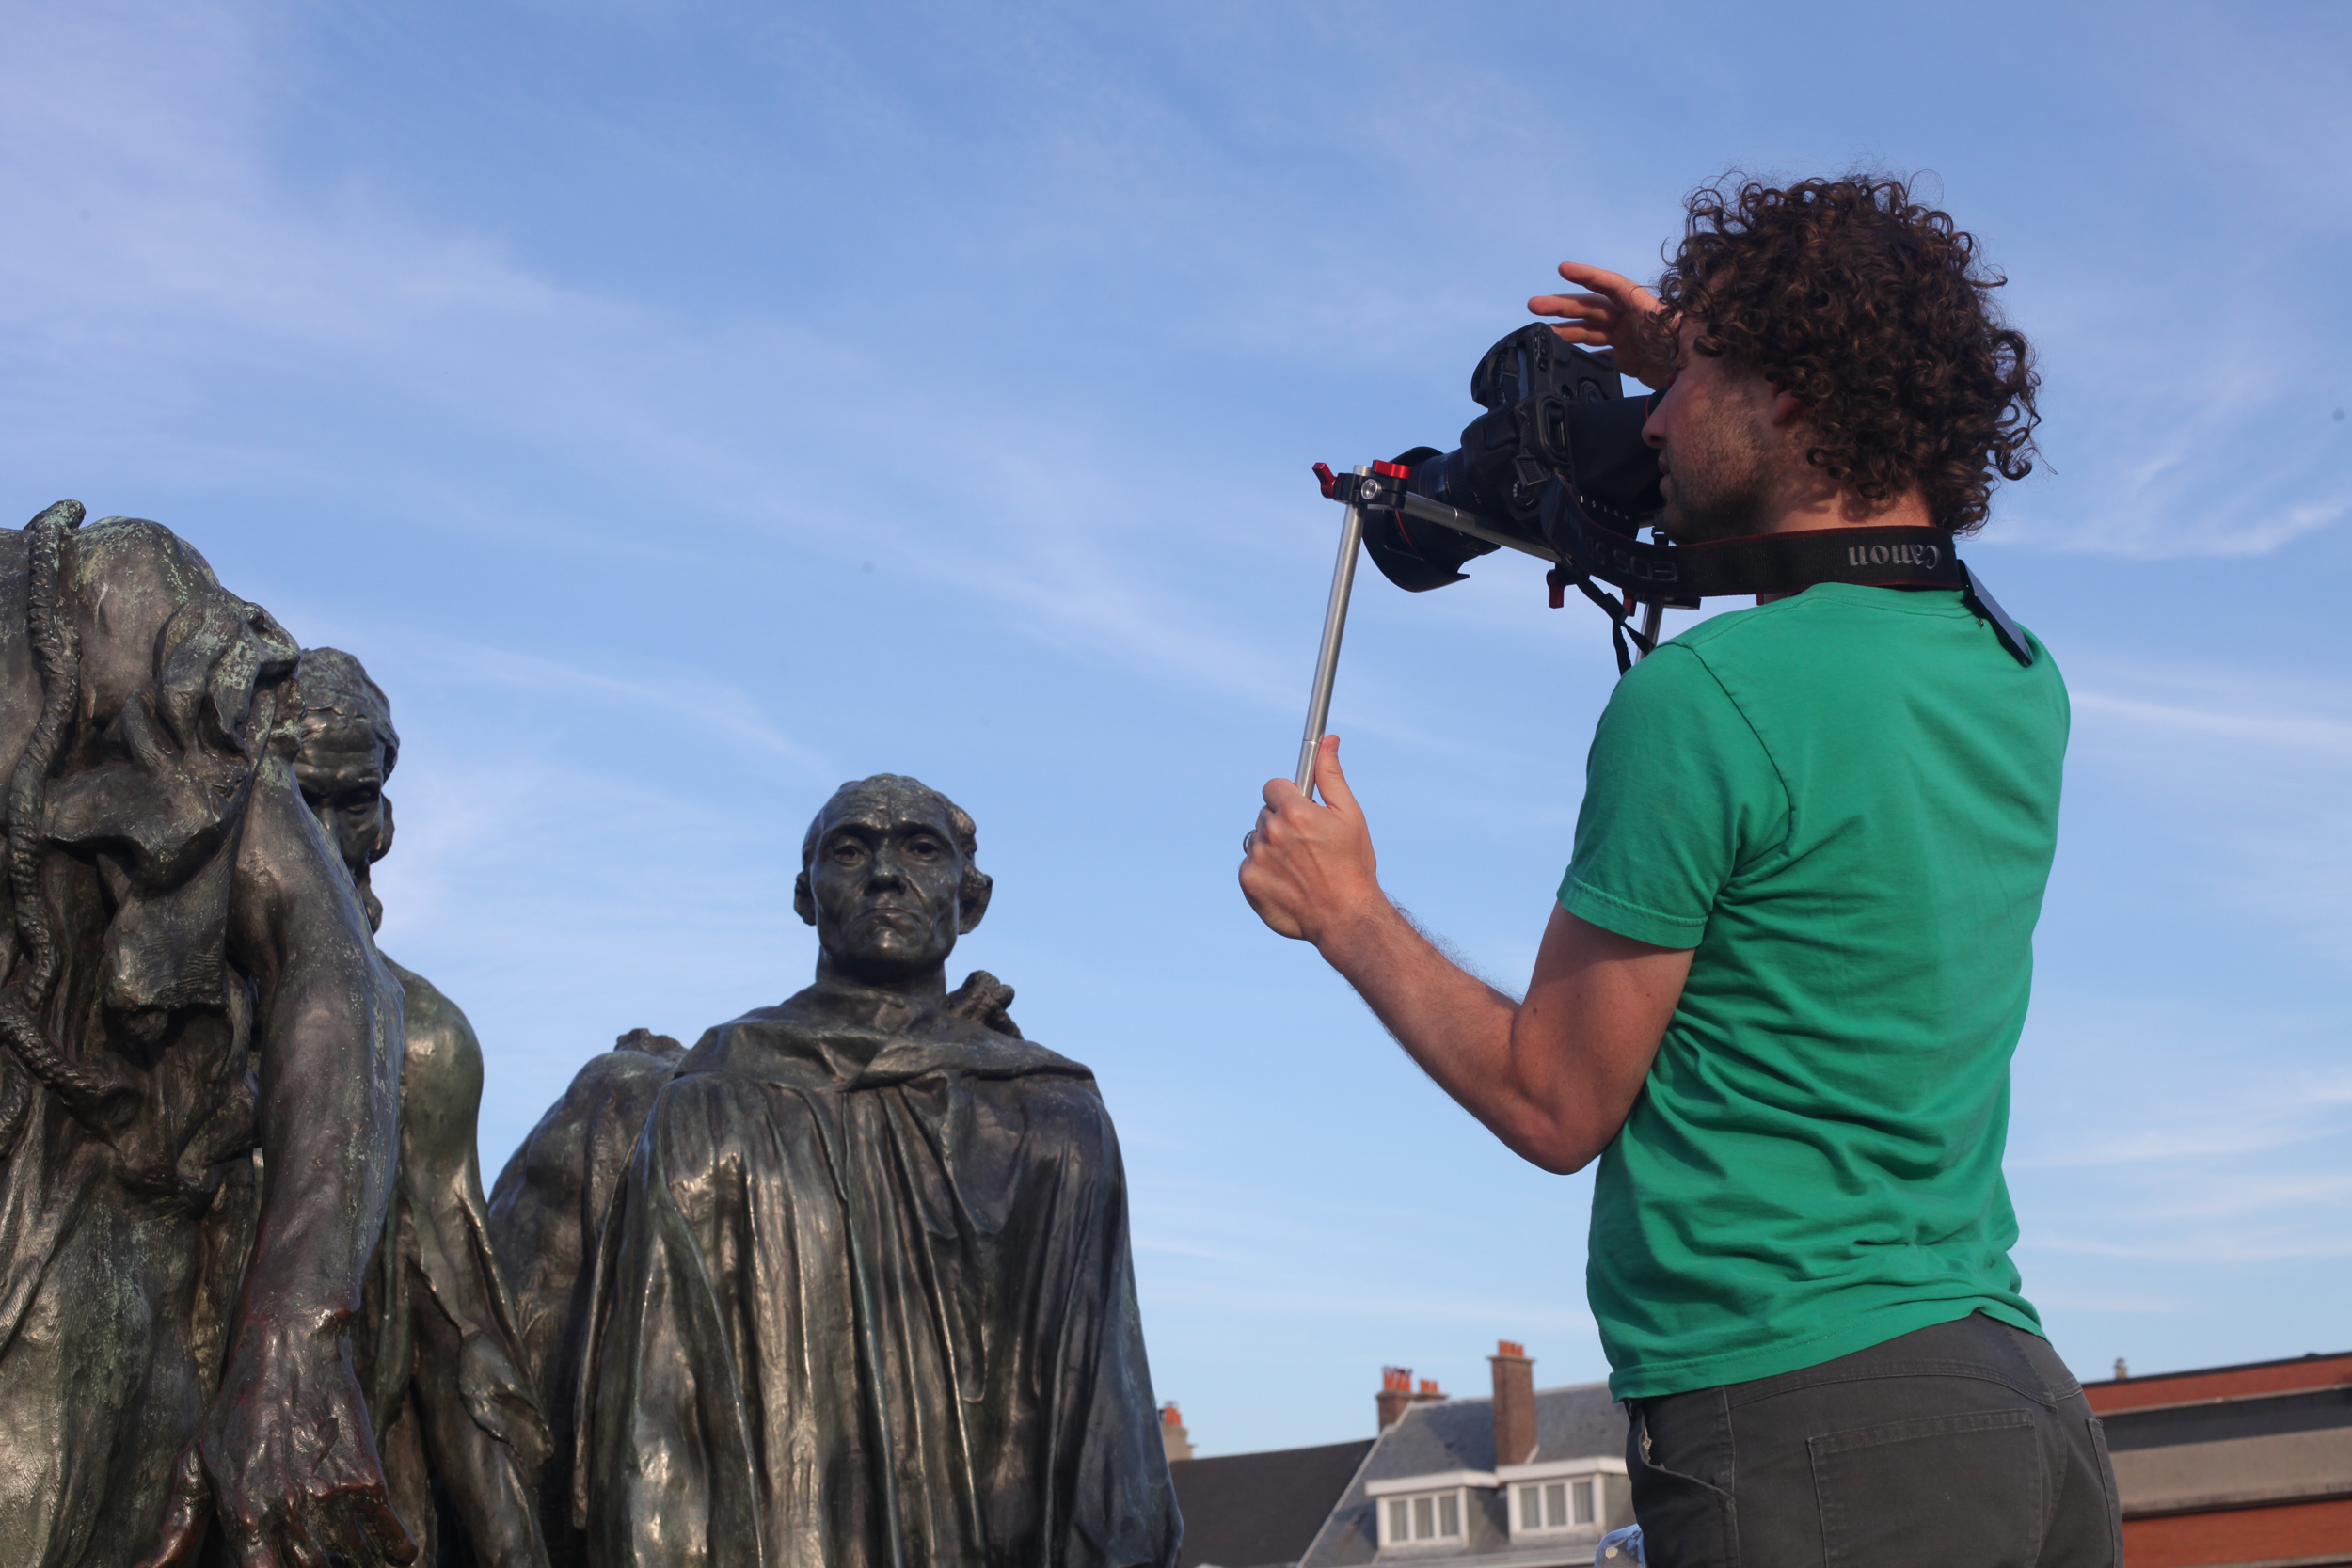 2010_Burghers_Crated_Displaced_Making_of_02.jpg